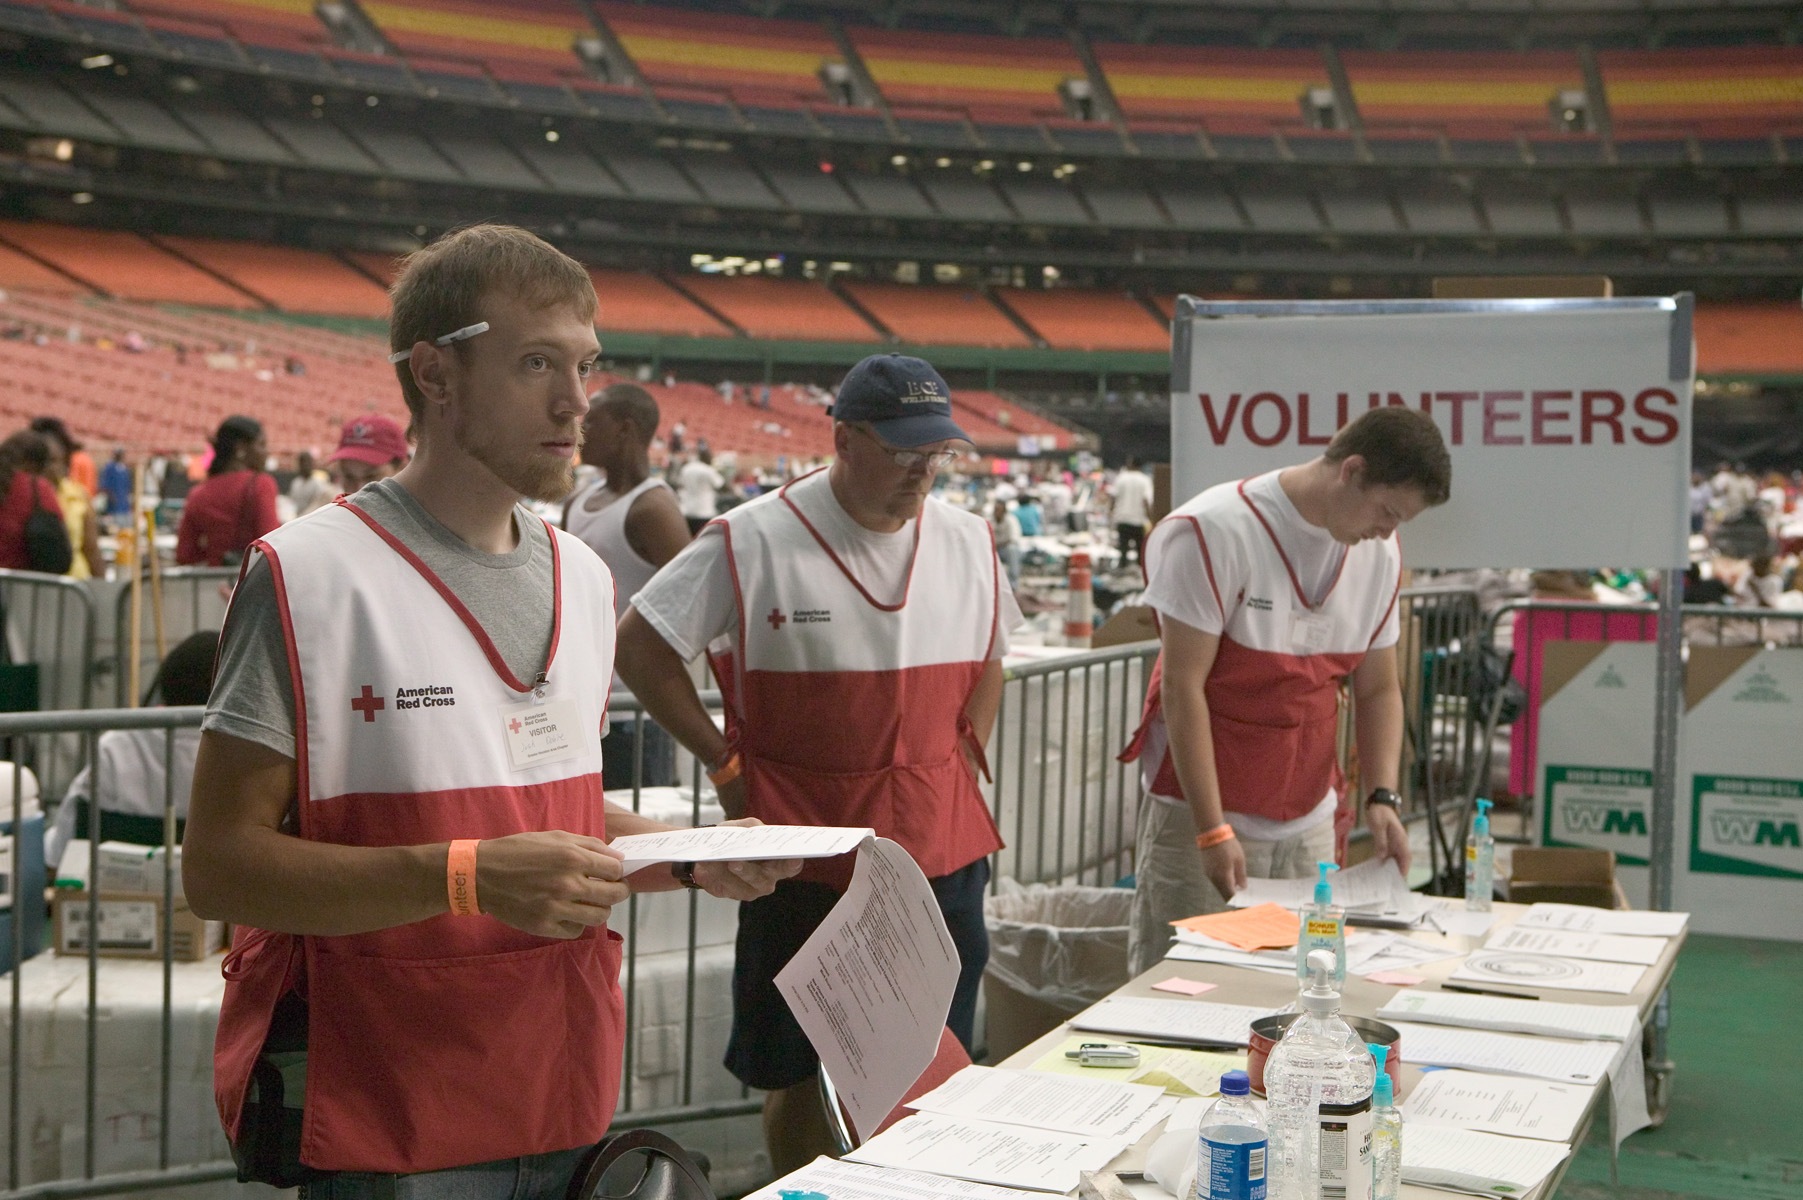 Volunteers assist Hurricane victims at the Houston Astrodome, following Hurricane Katrina.